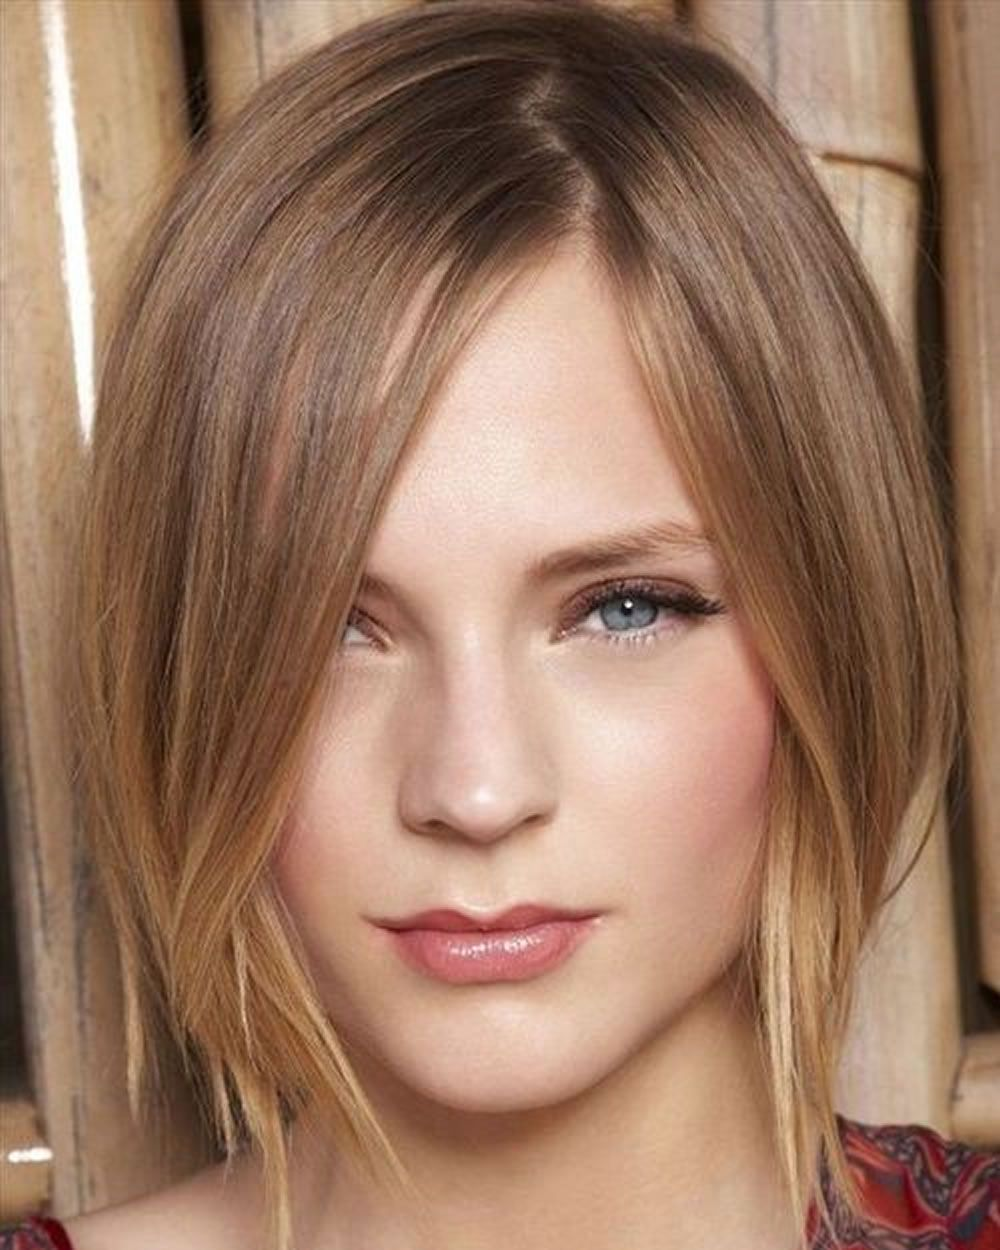 Chic Short Asymmetrical Haircut 2020 2021 Thin Hair Haircuts Hair Styles Hairstyles For Thin Hair